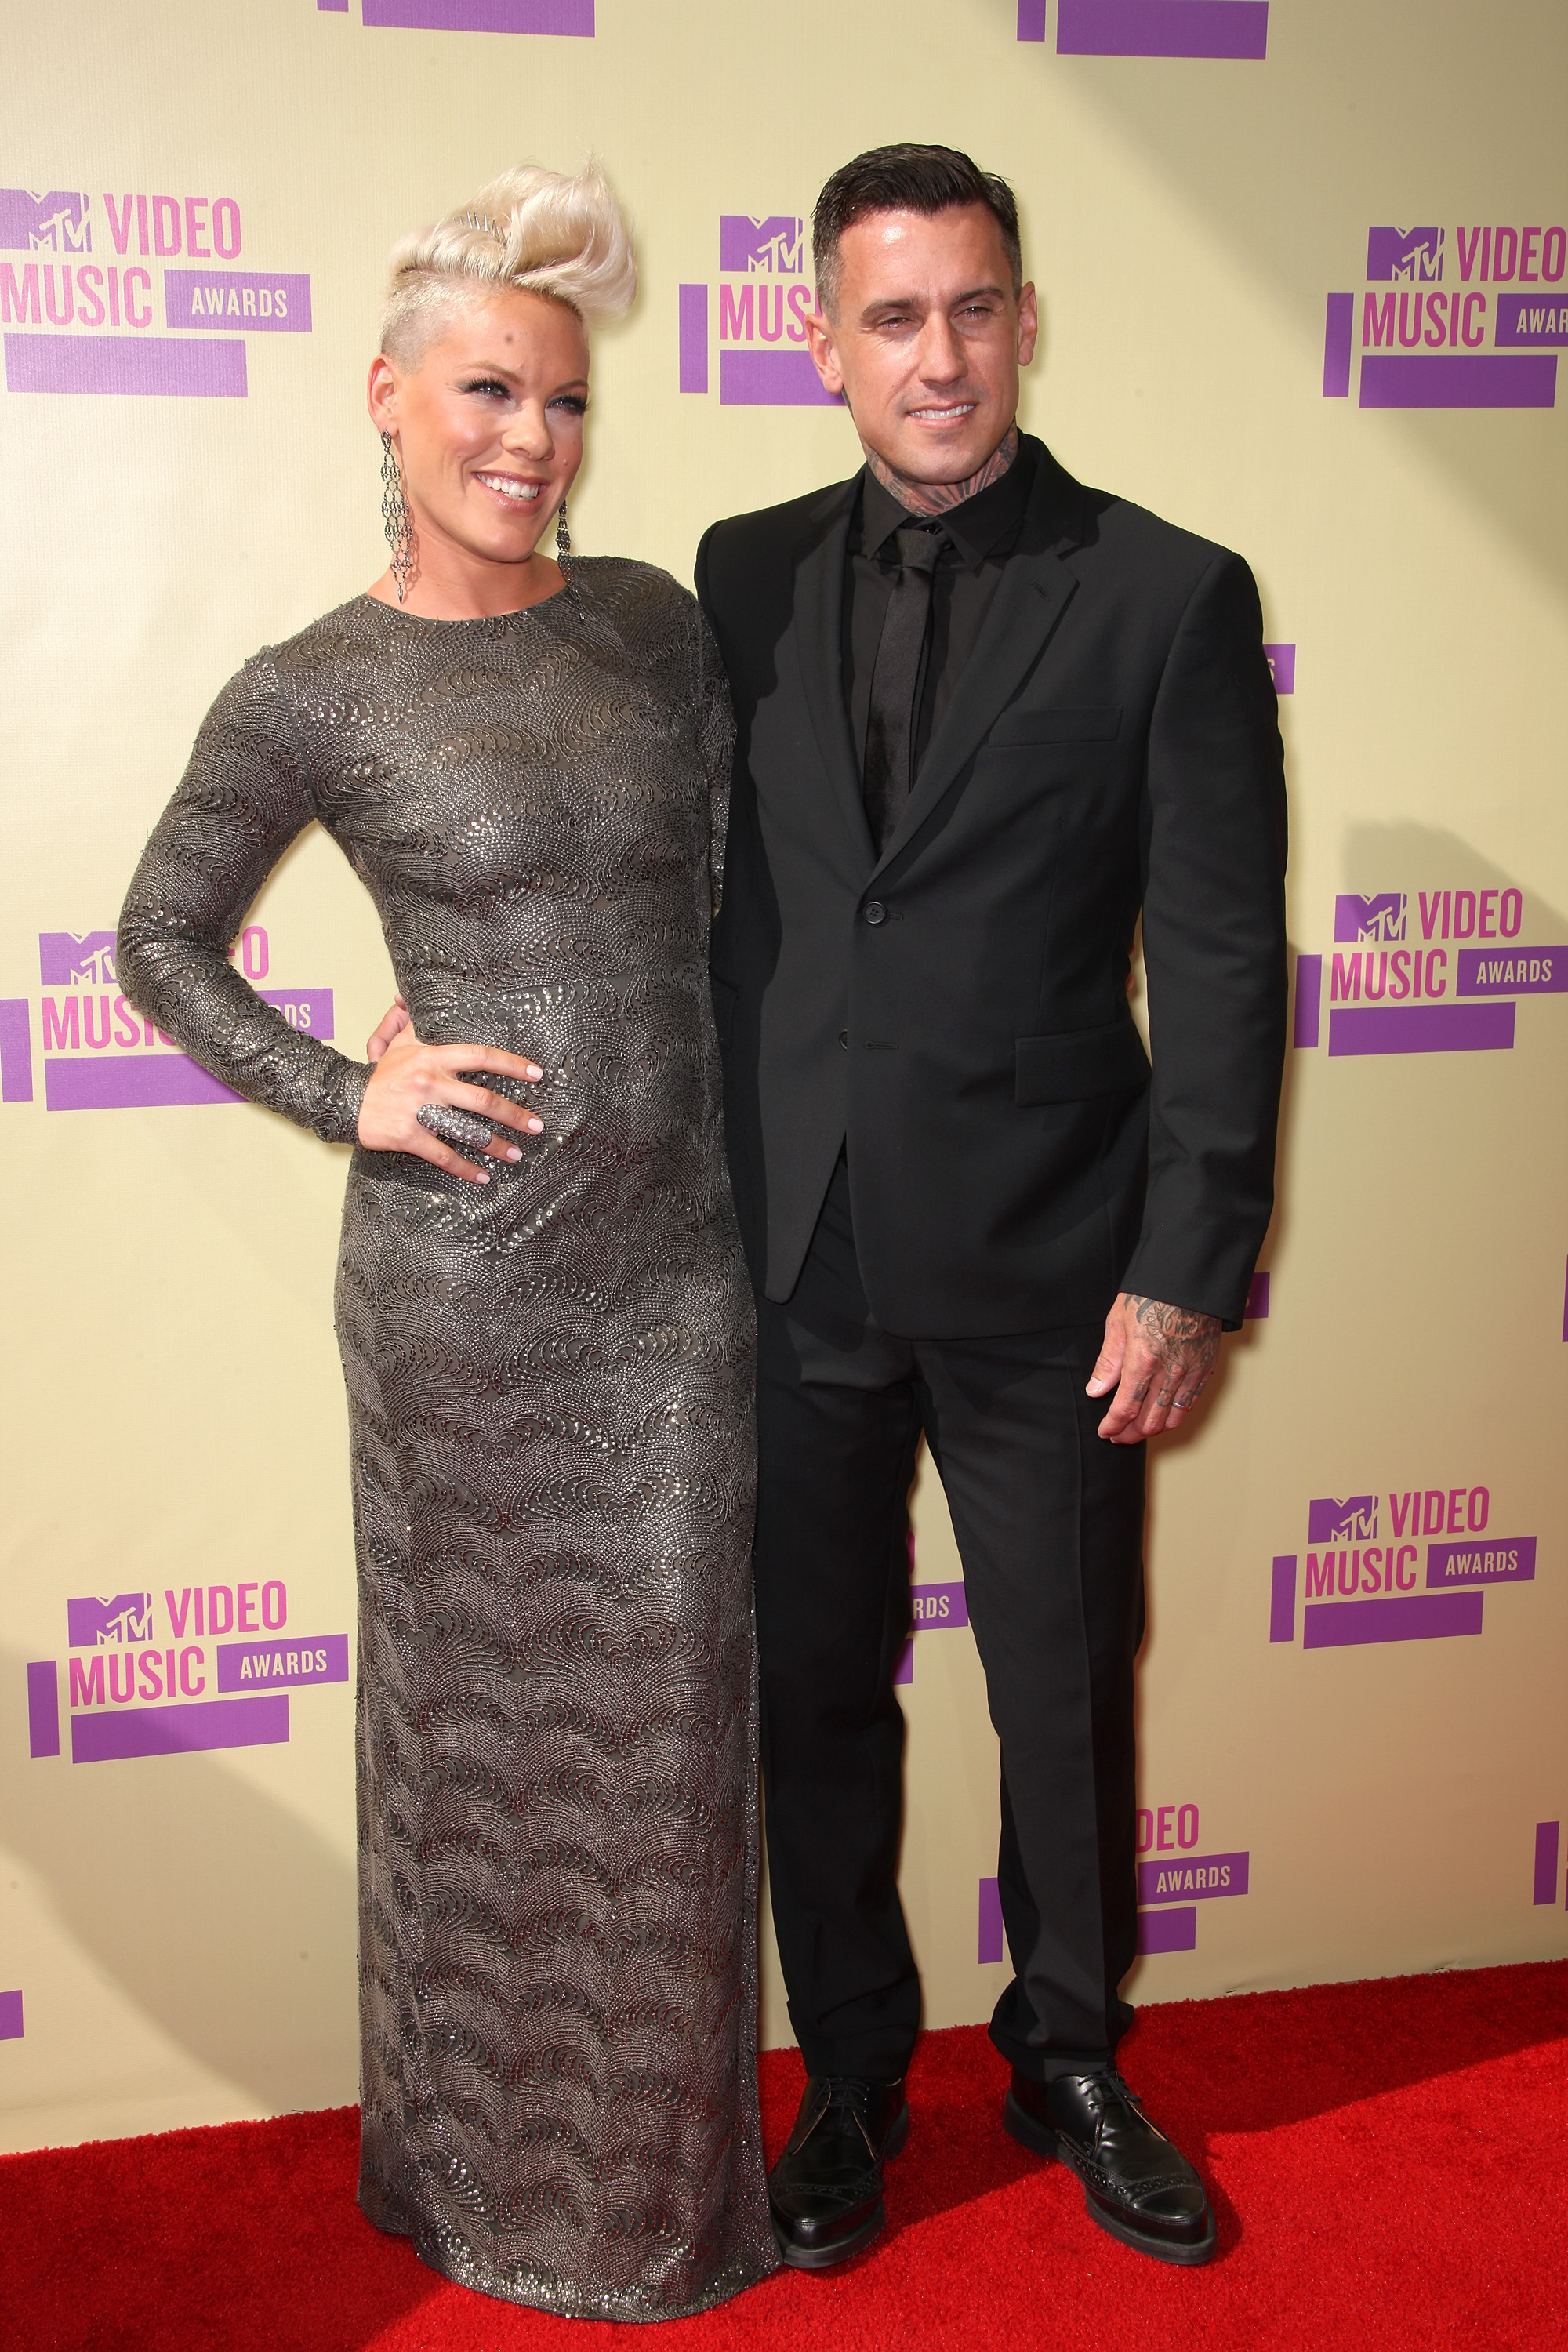 Singer Pink and professional motocross rider Carey Hart arrive at the 2012 MTV Video Music Awards at Staples Center on September 6, 2012 in Los Angeles, California. (Photo by Frederick M. Brown/Getty Images)